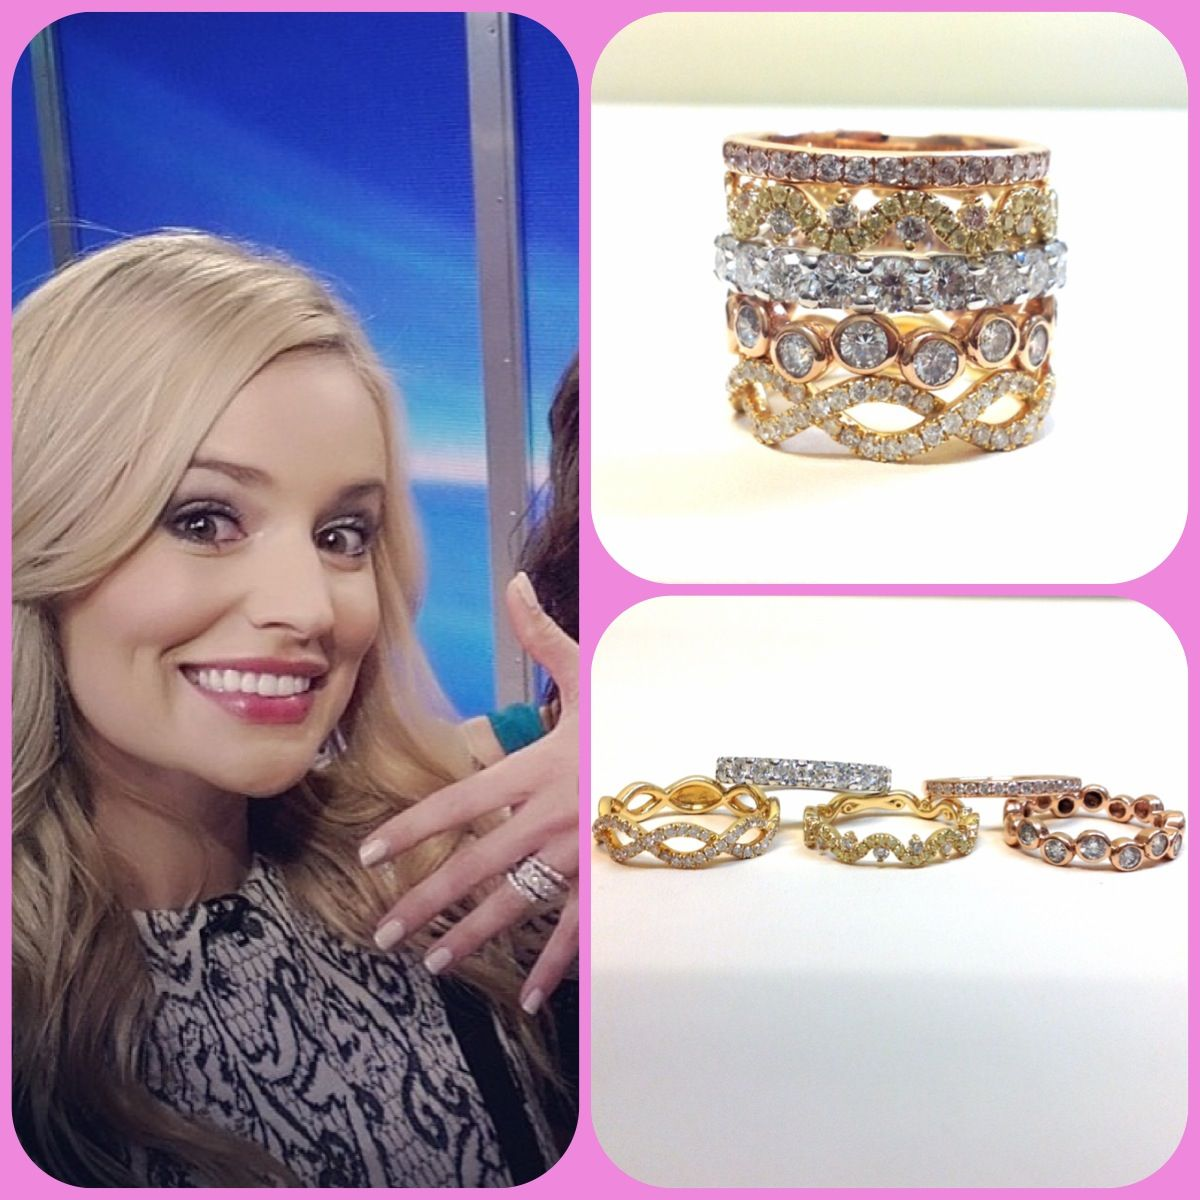 The Bachelorette Star, Emily Maynard, Chose Stackable Engagement Bands  Similar To Ours!